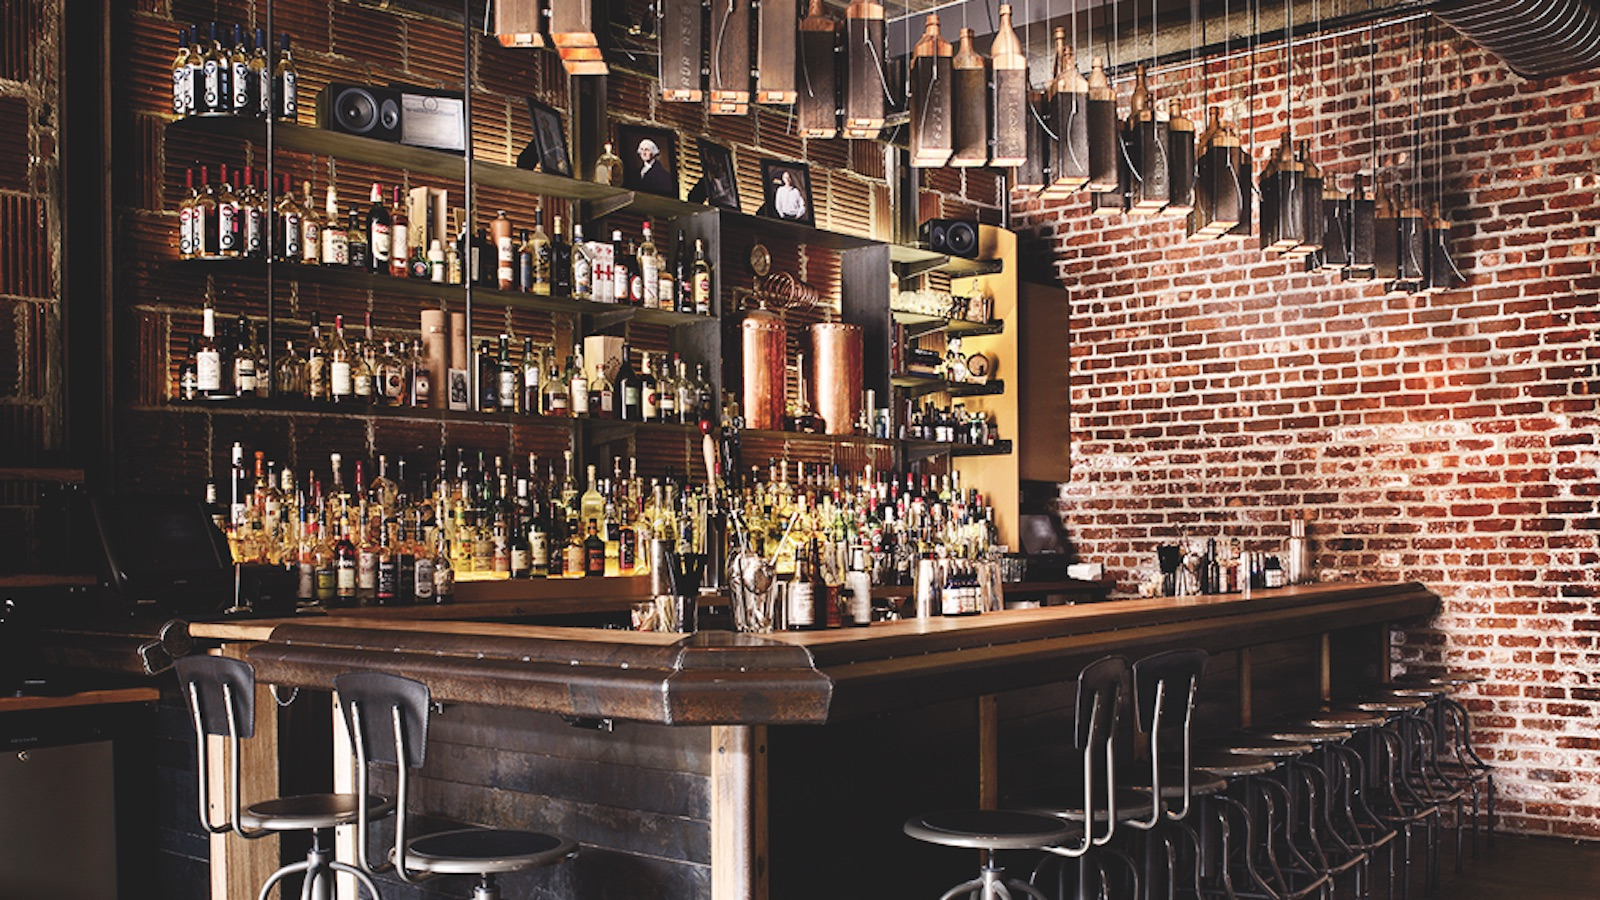 The Shanty bar at New York Distilling Co. in Brooklyn, NY